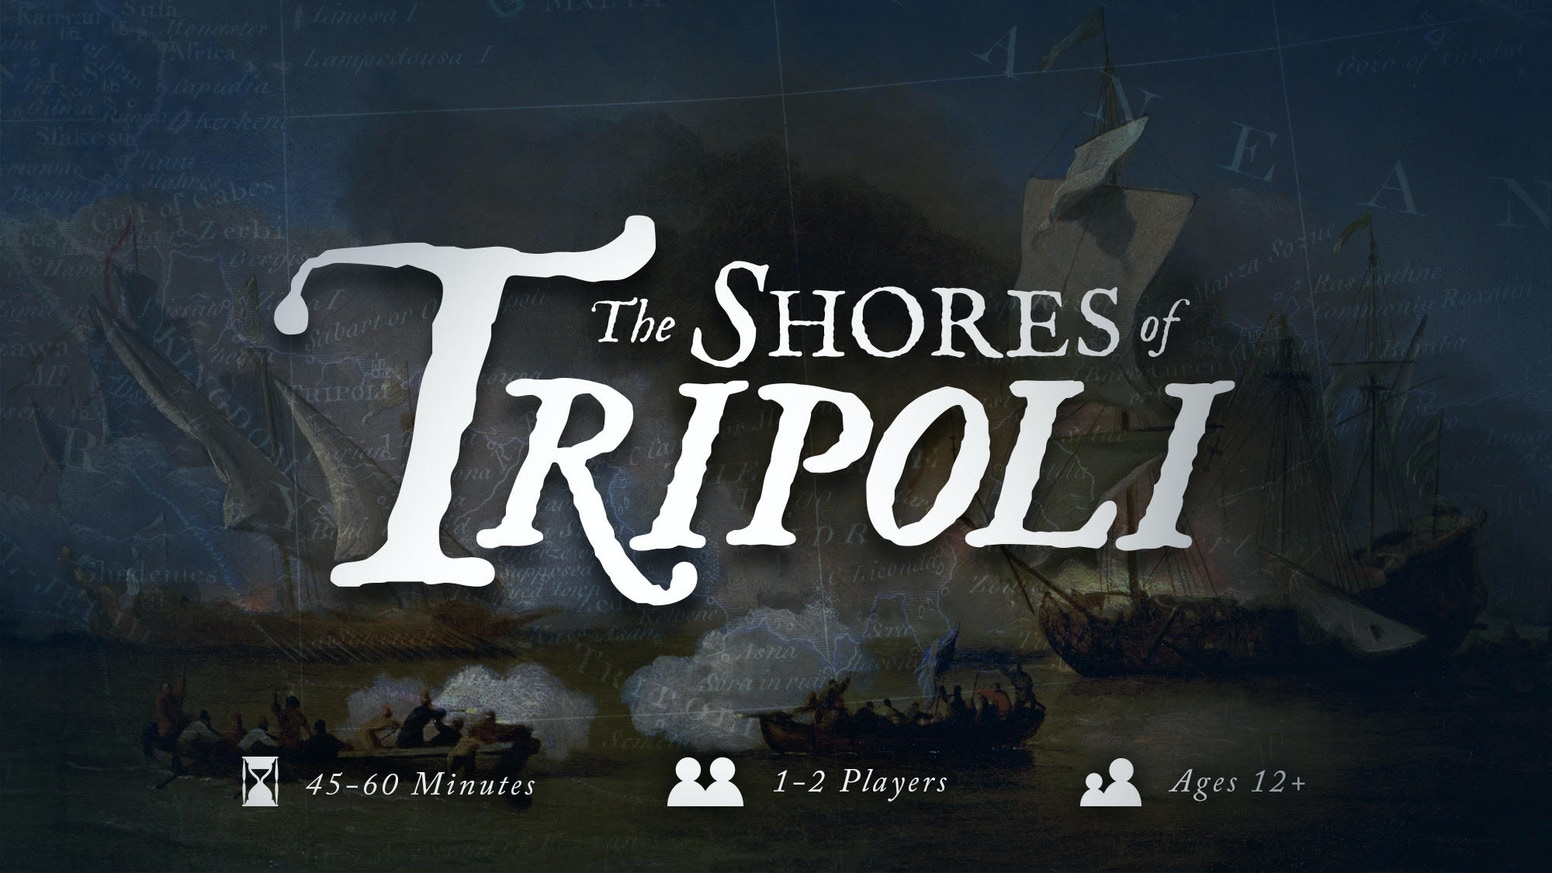 The pirates of Tripoli battle the United States in the First Barbary War!